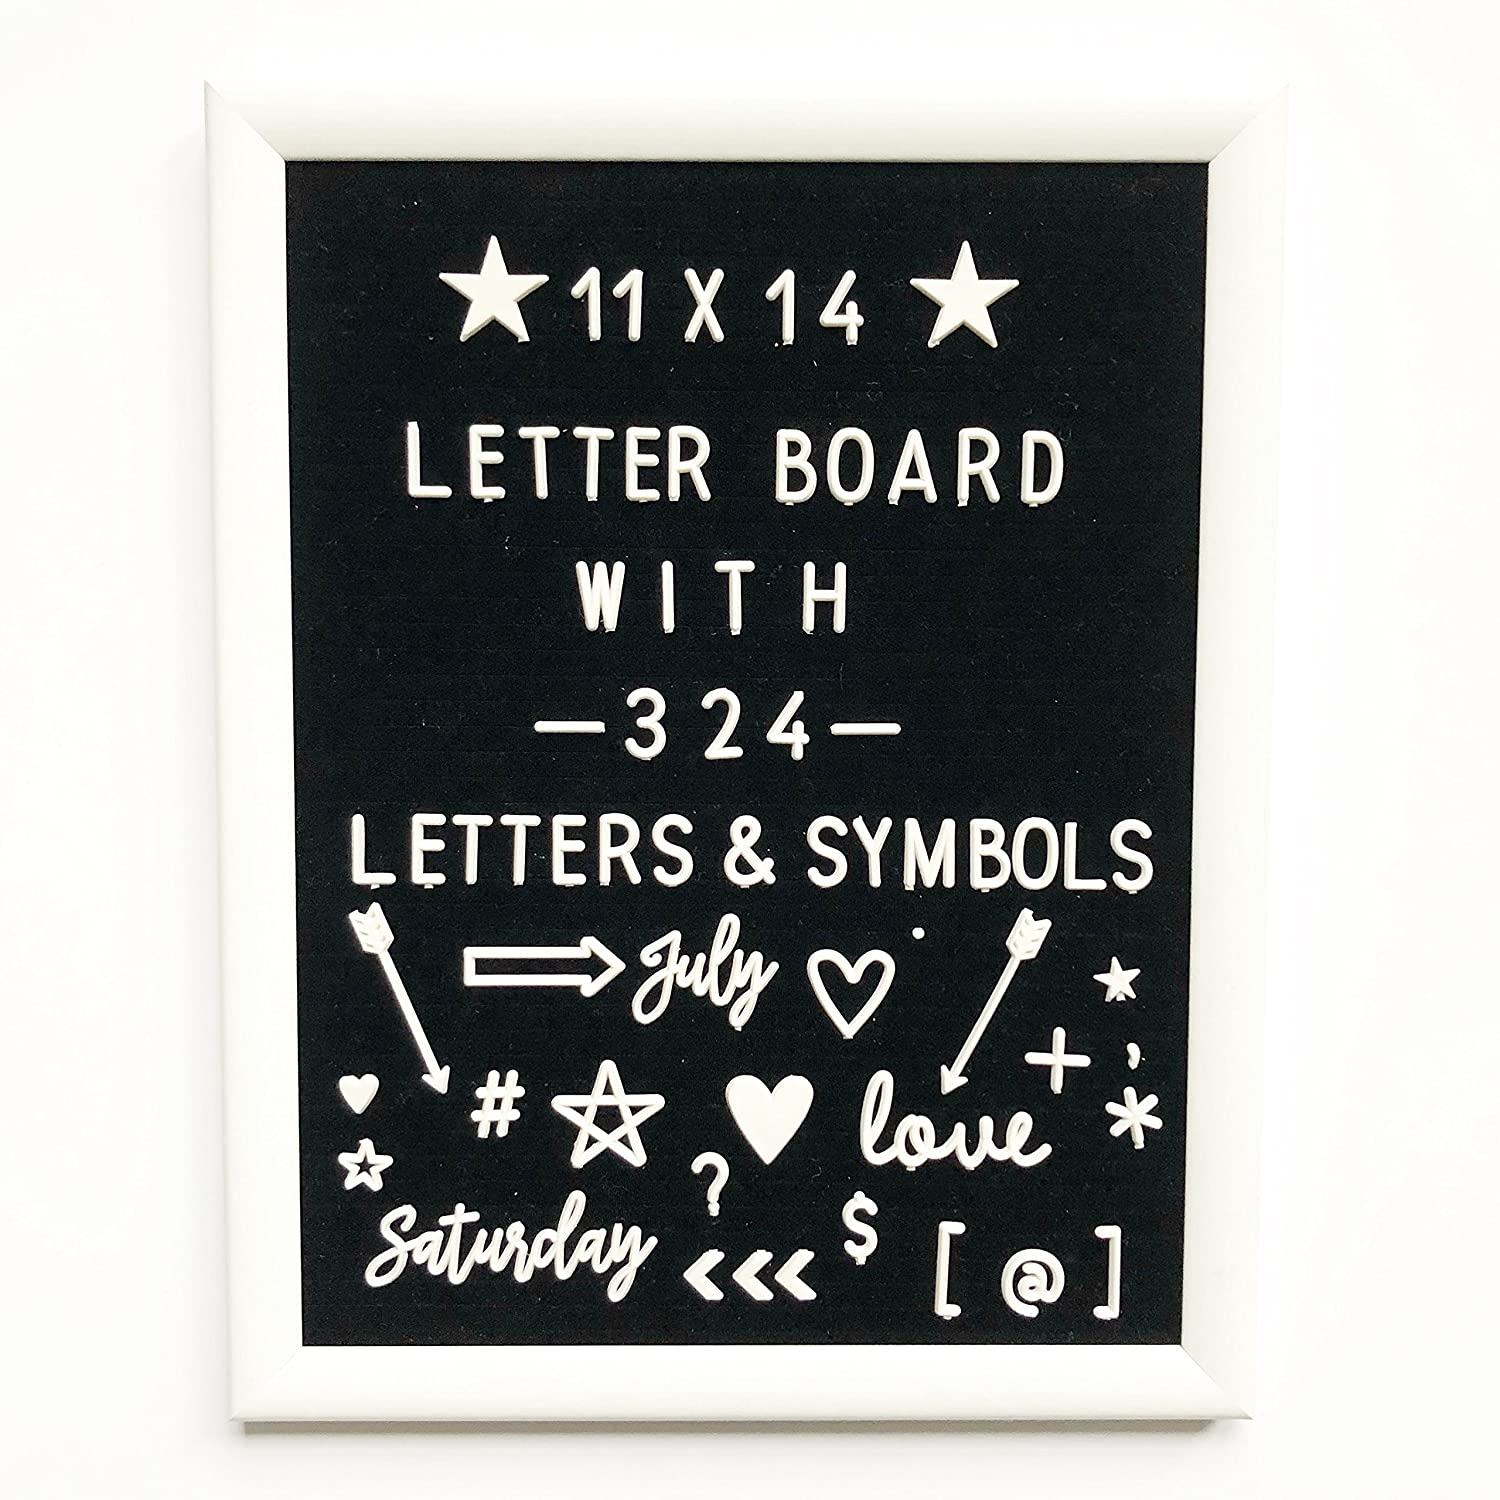 11 x 14 Changeable Letter Board with White Wood Frame, Black Felt Message Sign, Vintage Classroom Announcement Word Bulletin Board + 324 Unique Plastic Characters Set For Menu or Office Quote Signs